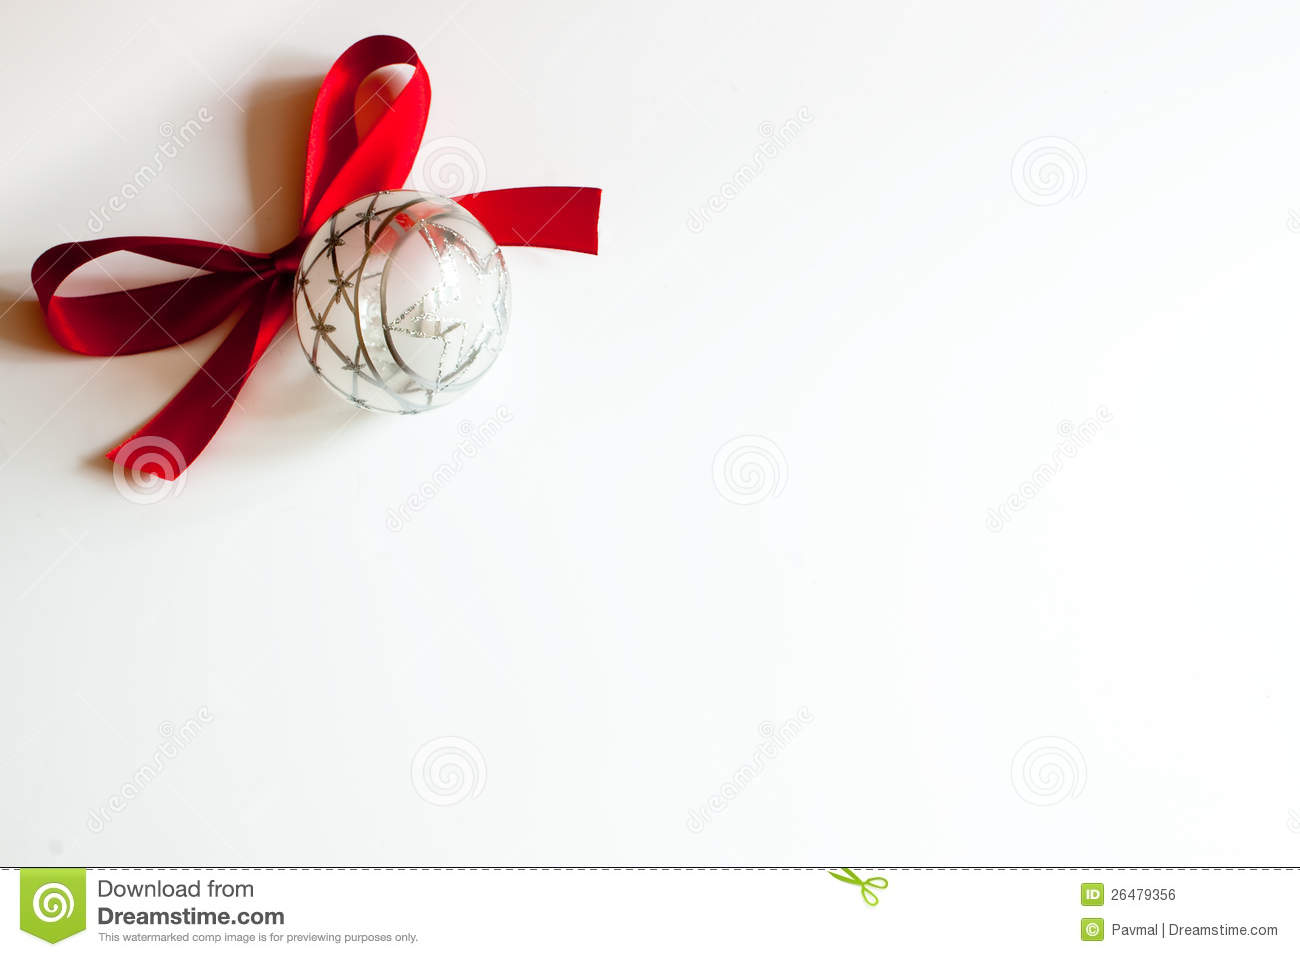 Christmas Frame For Writing Stock Photo - Image of blank, text: 26479356